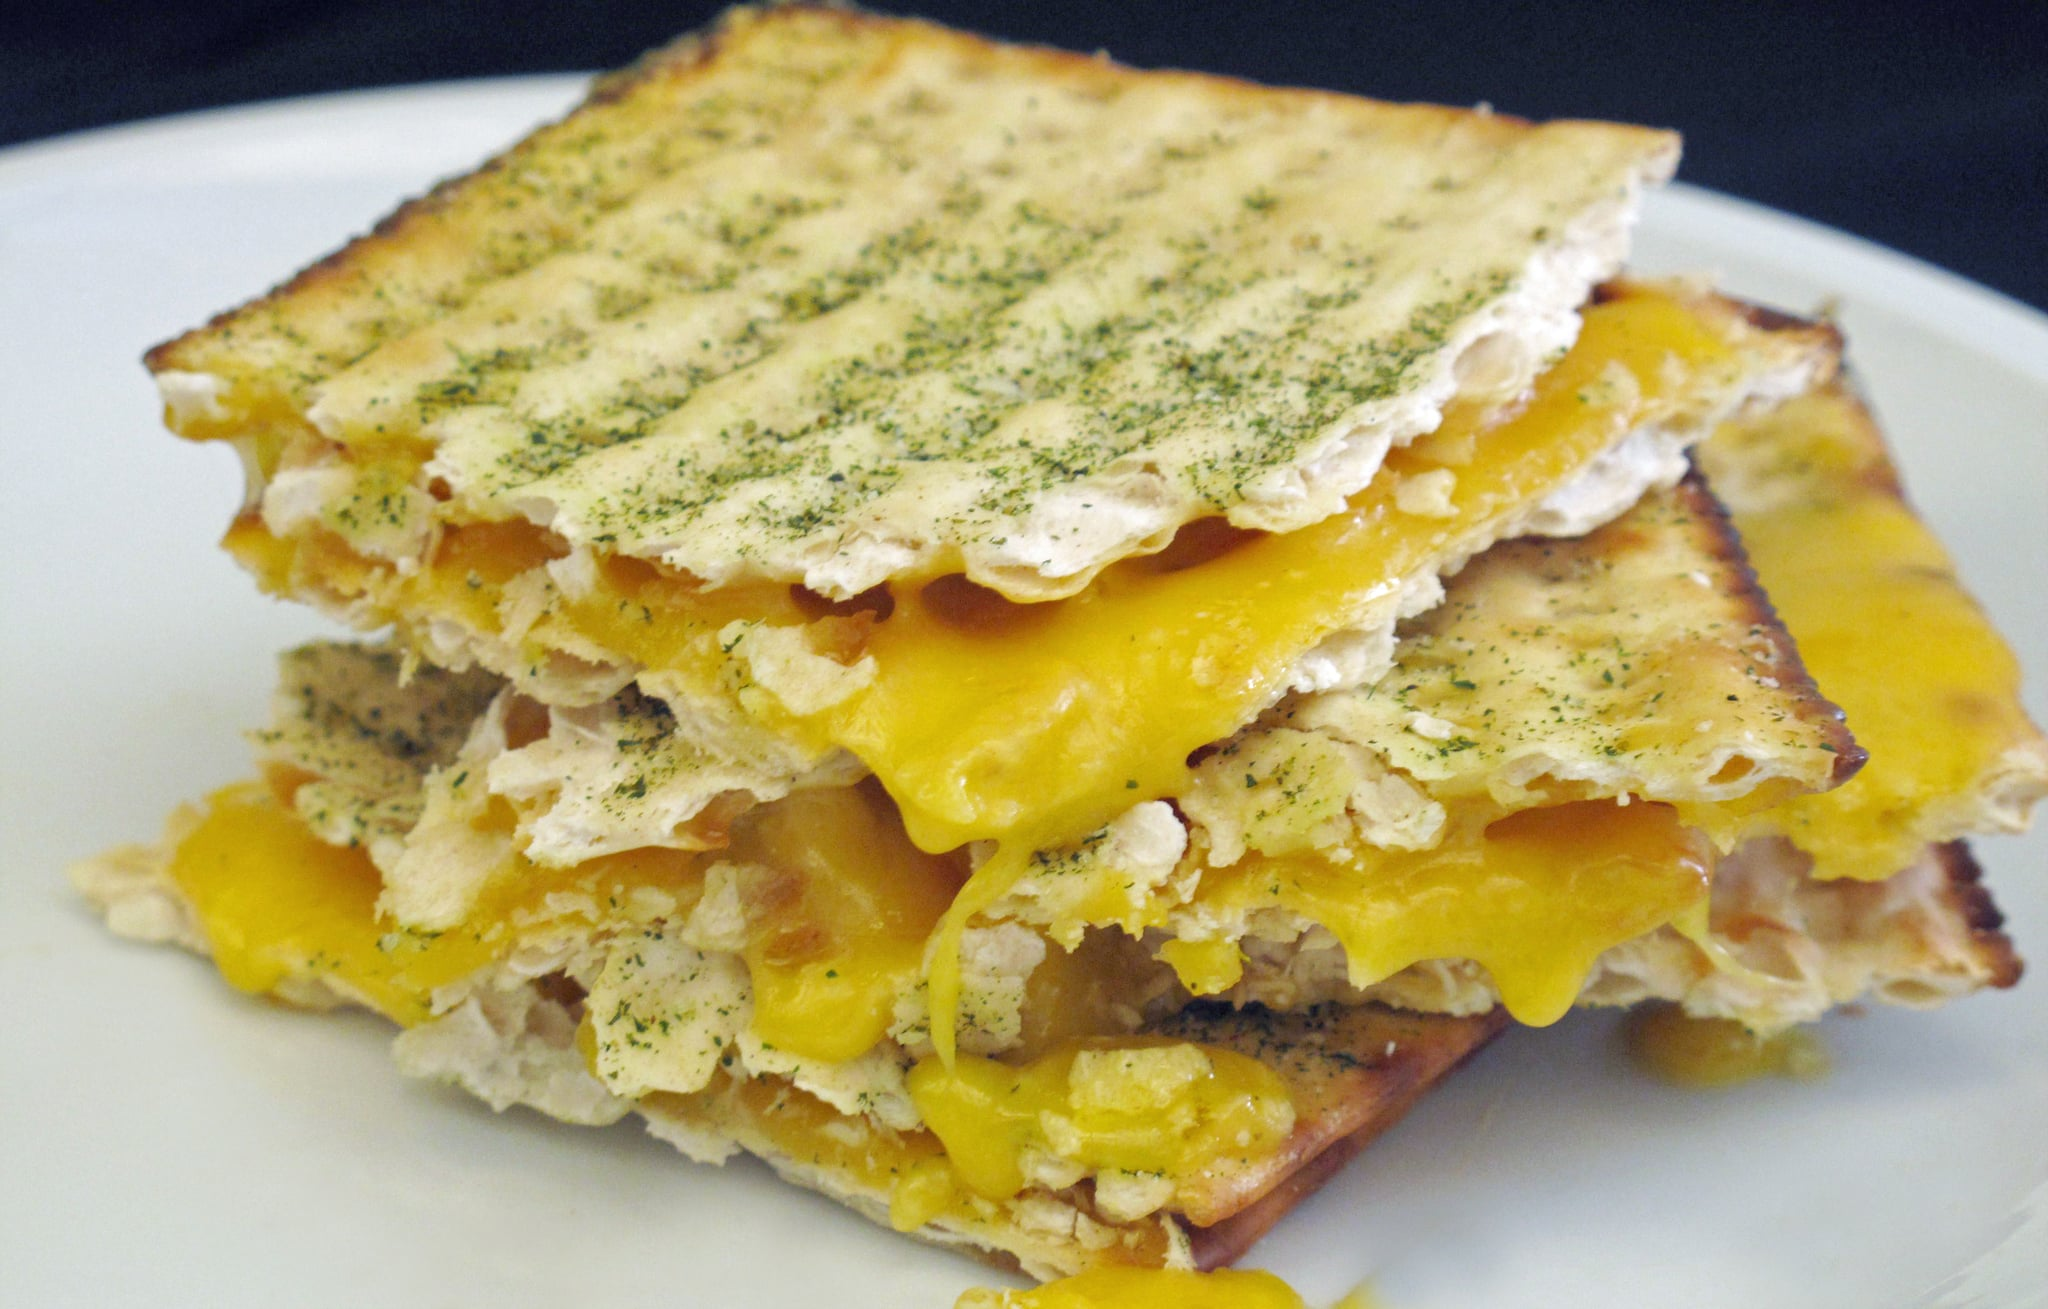 matzo grilled cheese on a plate